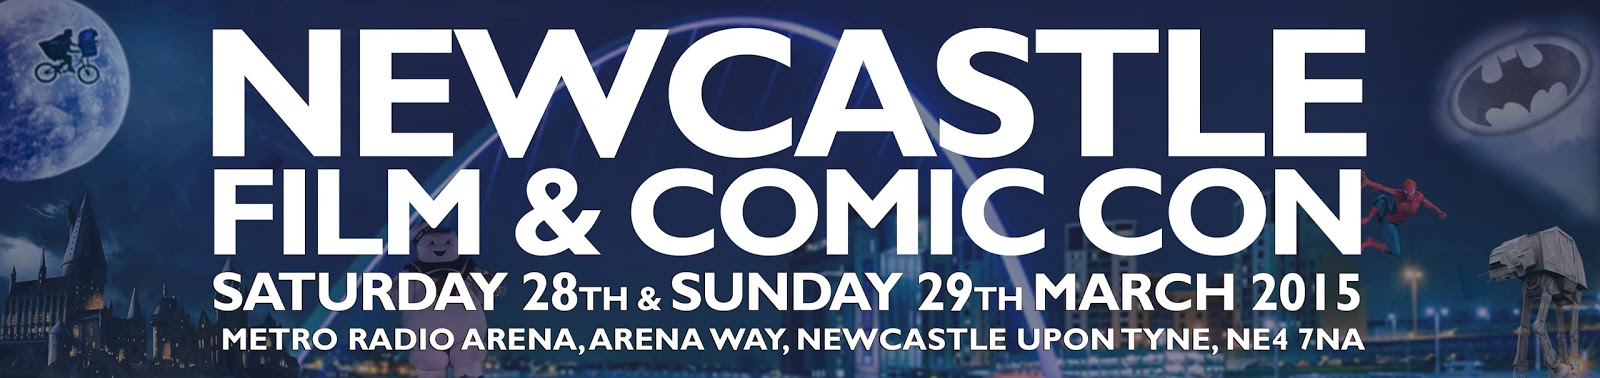 Events - Newcastle Film and Comic Con Review #NFCC